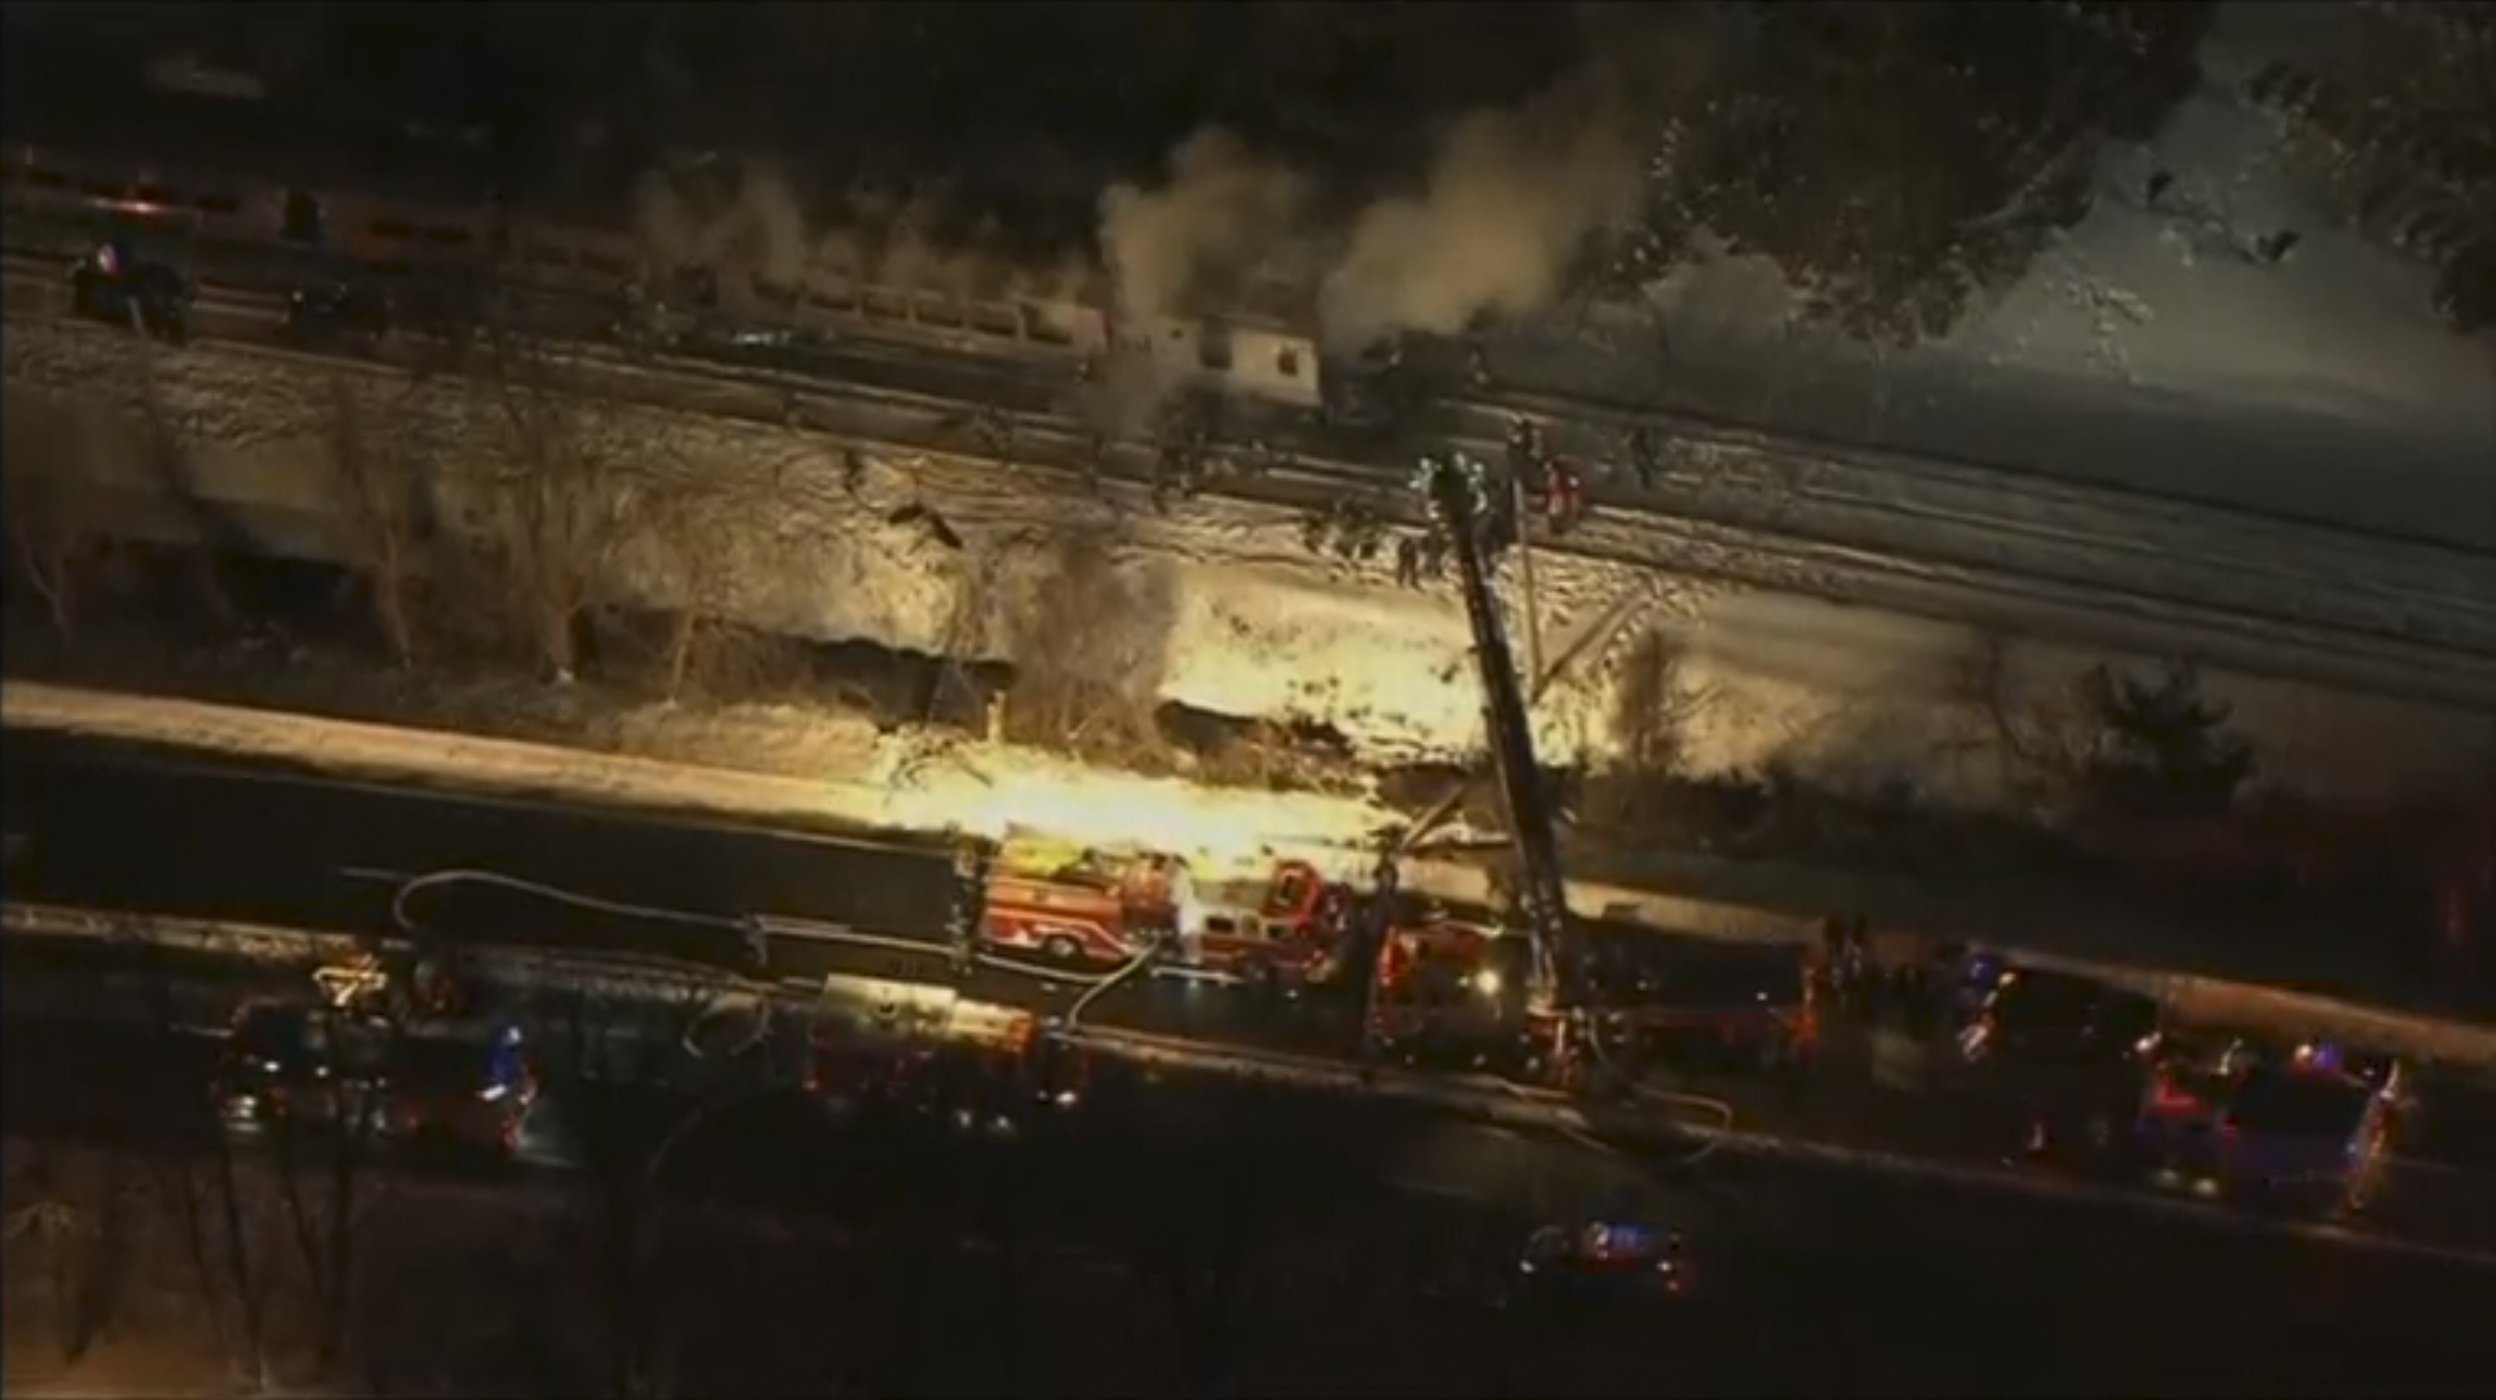 A still image captured from WNBC-TV aerial video shows first responders battling a fire on a New York City Metro-North train following an accident near Valhalla, N.Y. on Feb. 3, 2015.